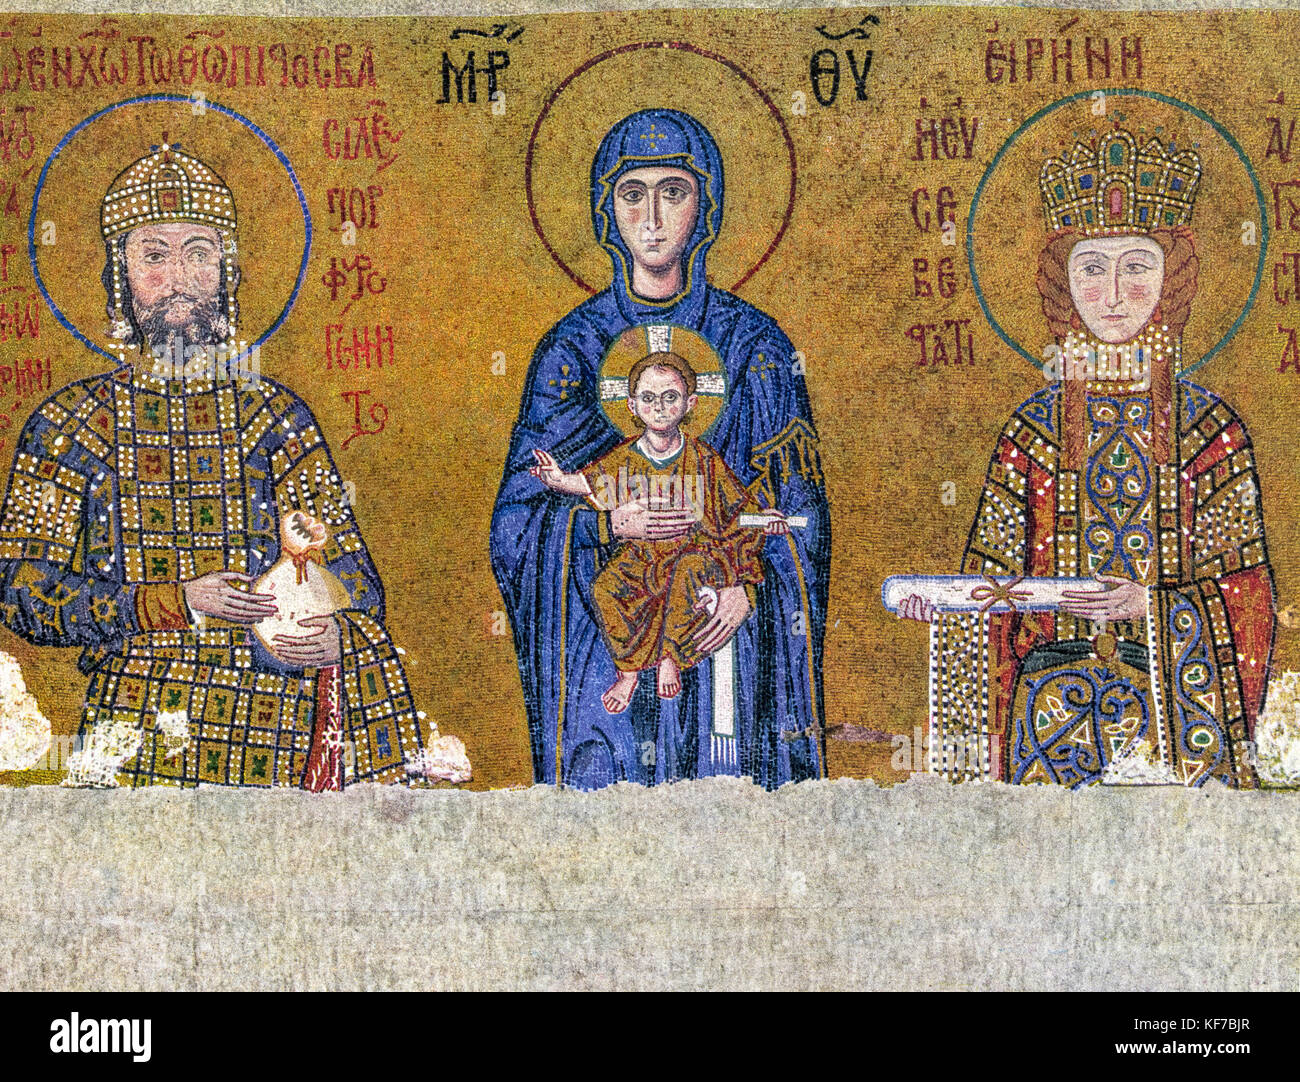 Turkey Istanbul Basilica of the Hagia Sophia - mosaic - Virgin with child -Emperor John II and Empress Irene XII Stock Photo